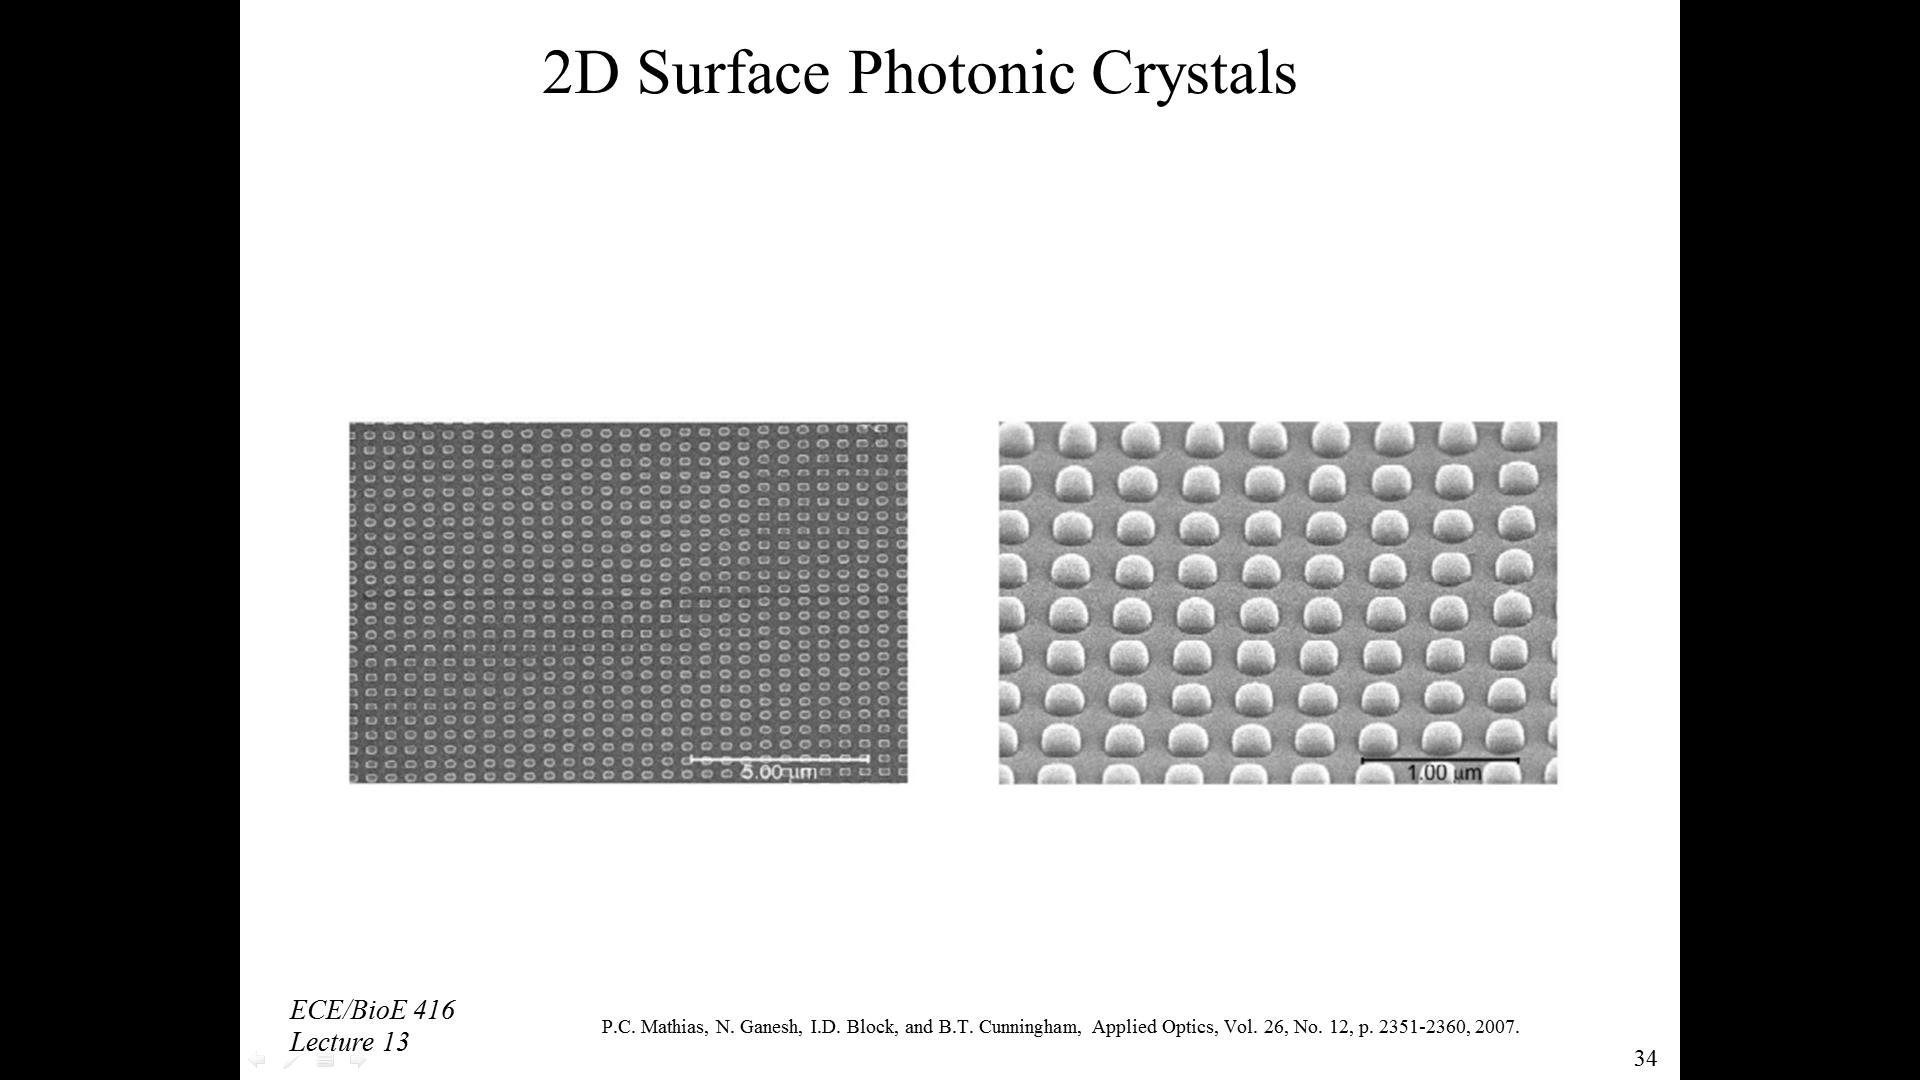 2D Surface Photonic Crystals